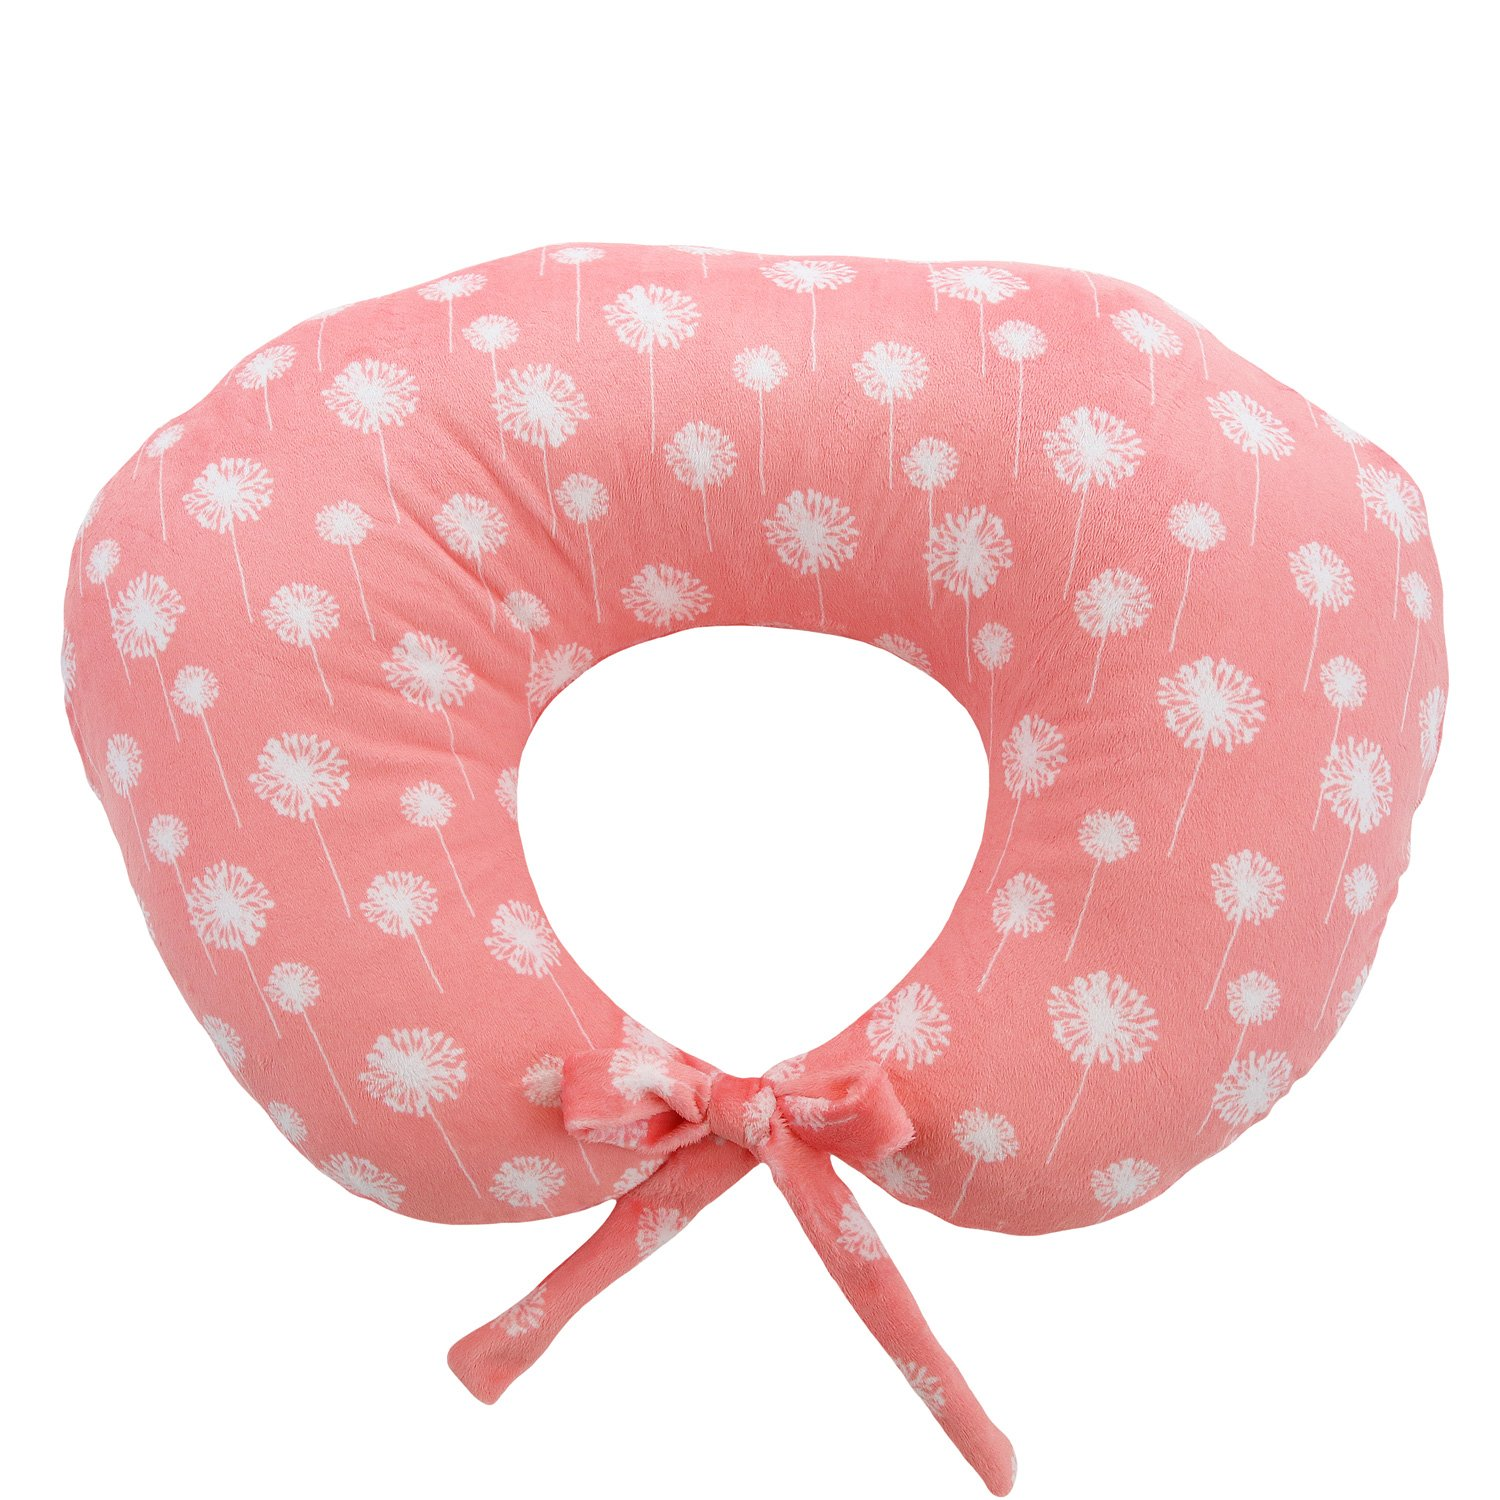 My Blankee Nursing Pillow with Dandelion Minky Slipcover, Coral, Small/Medium